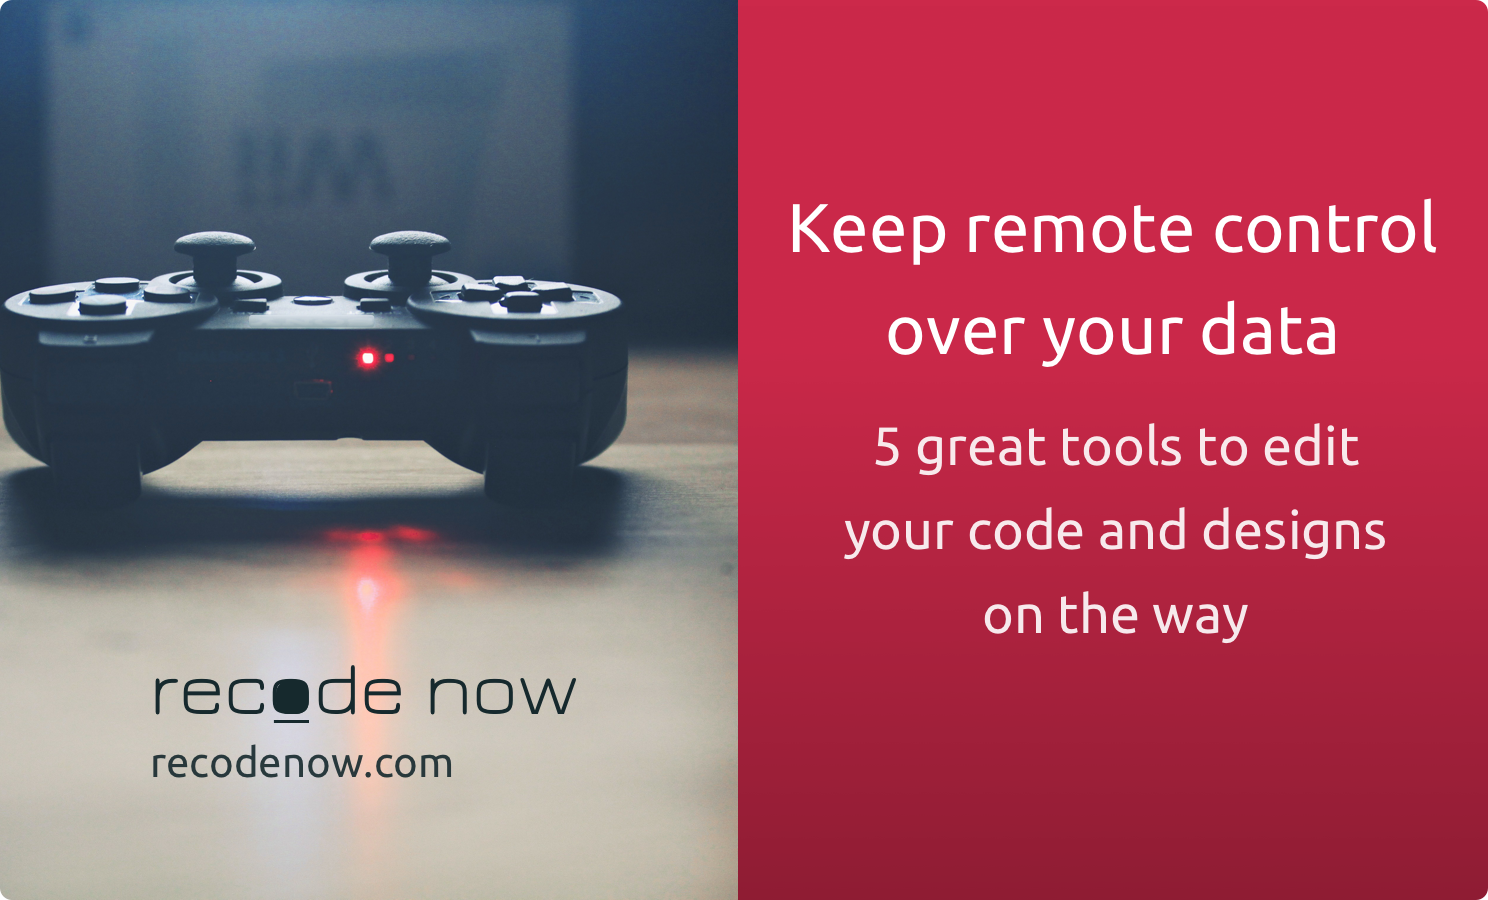 5 Great Tools To Keep Control Over Your Data Remotely